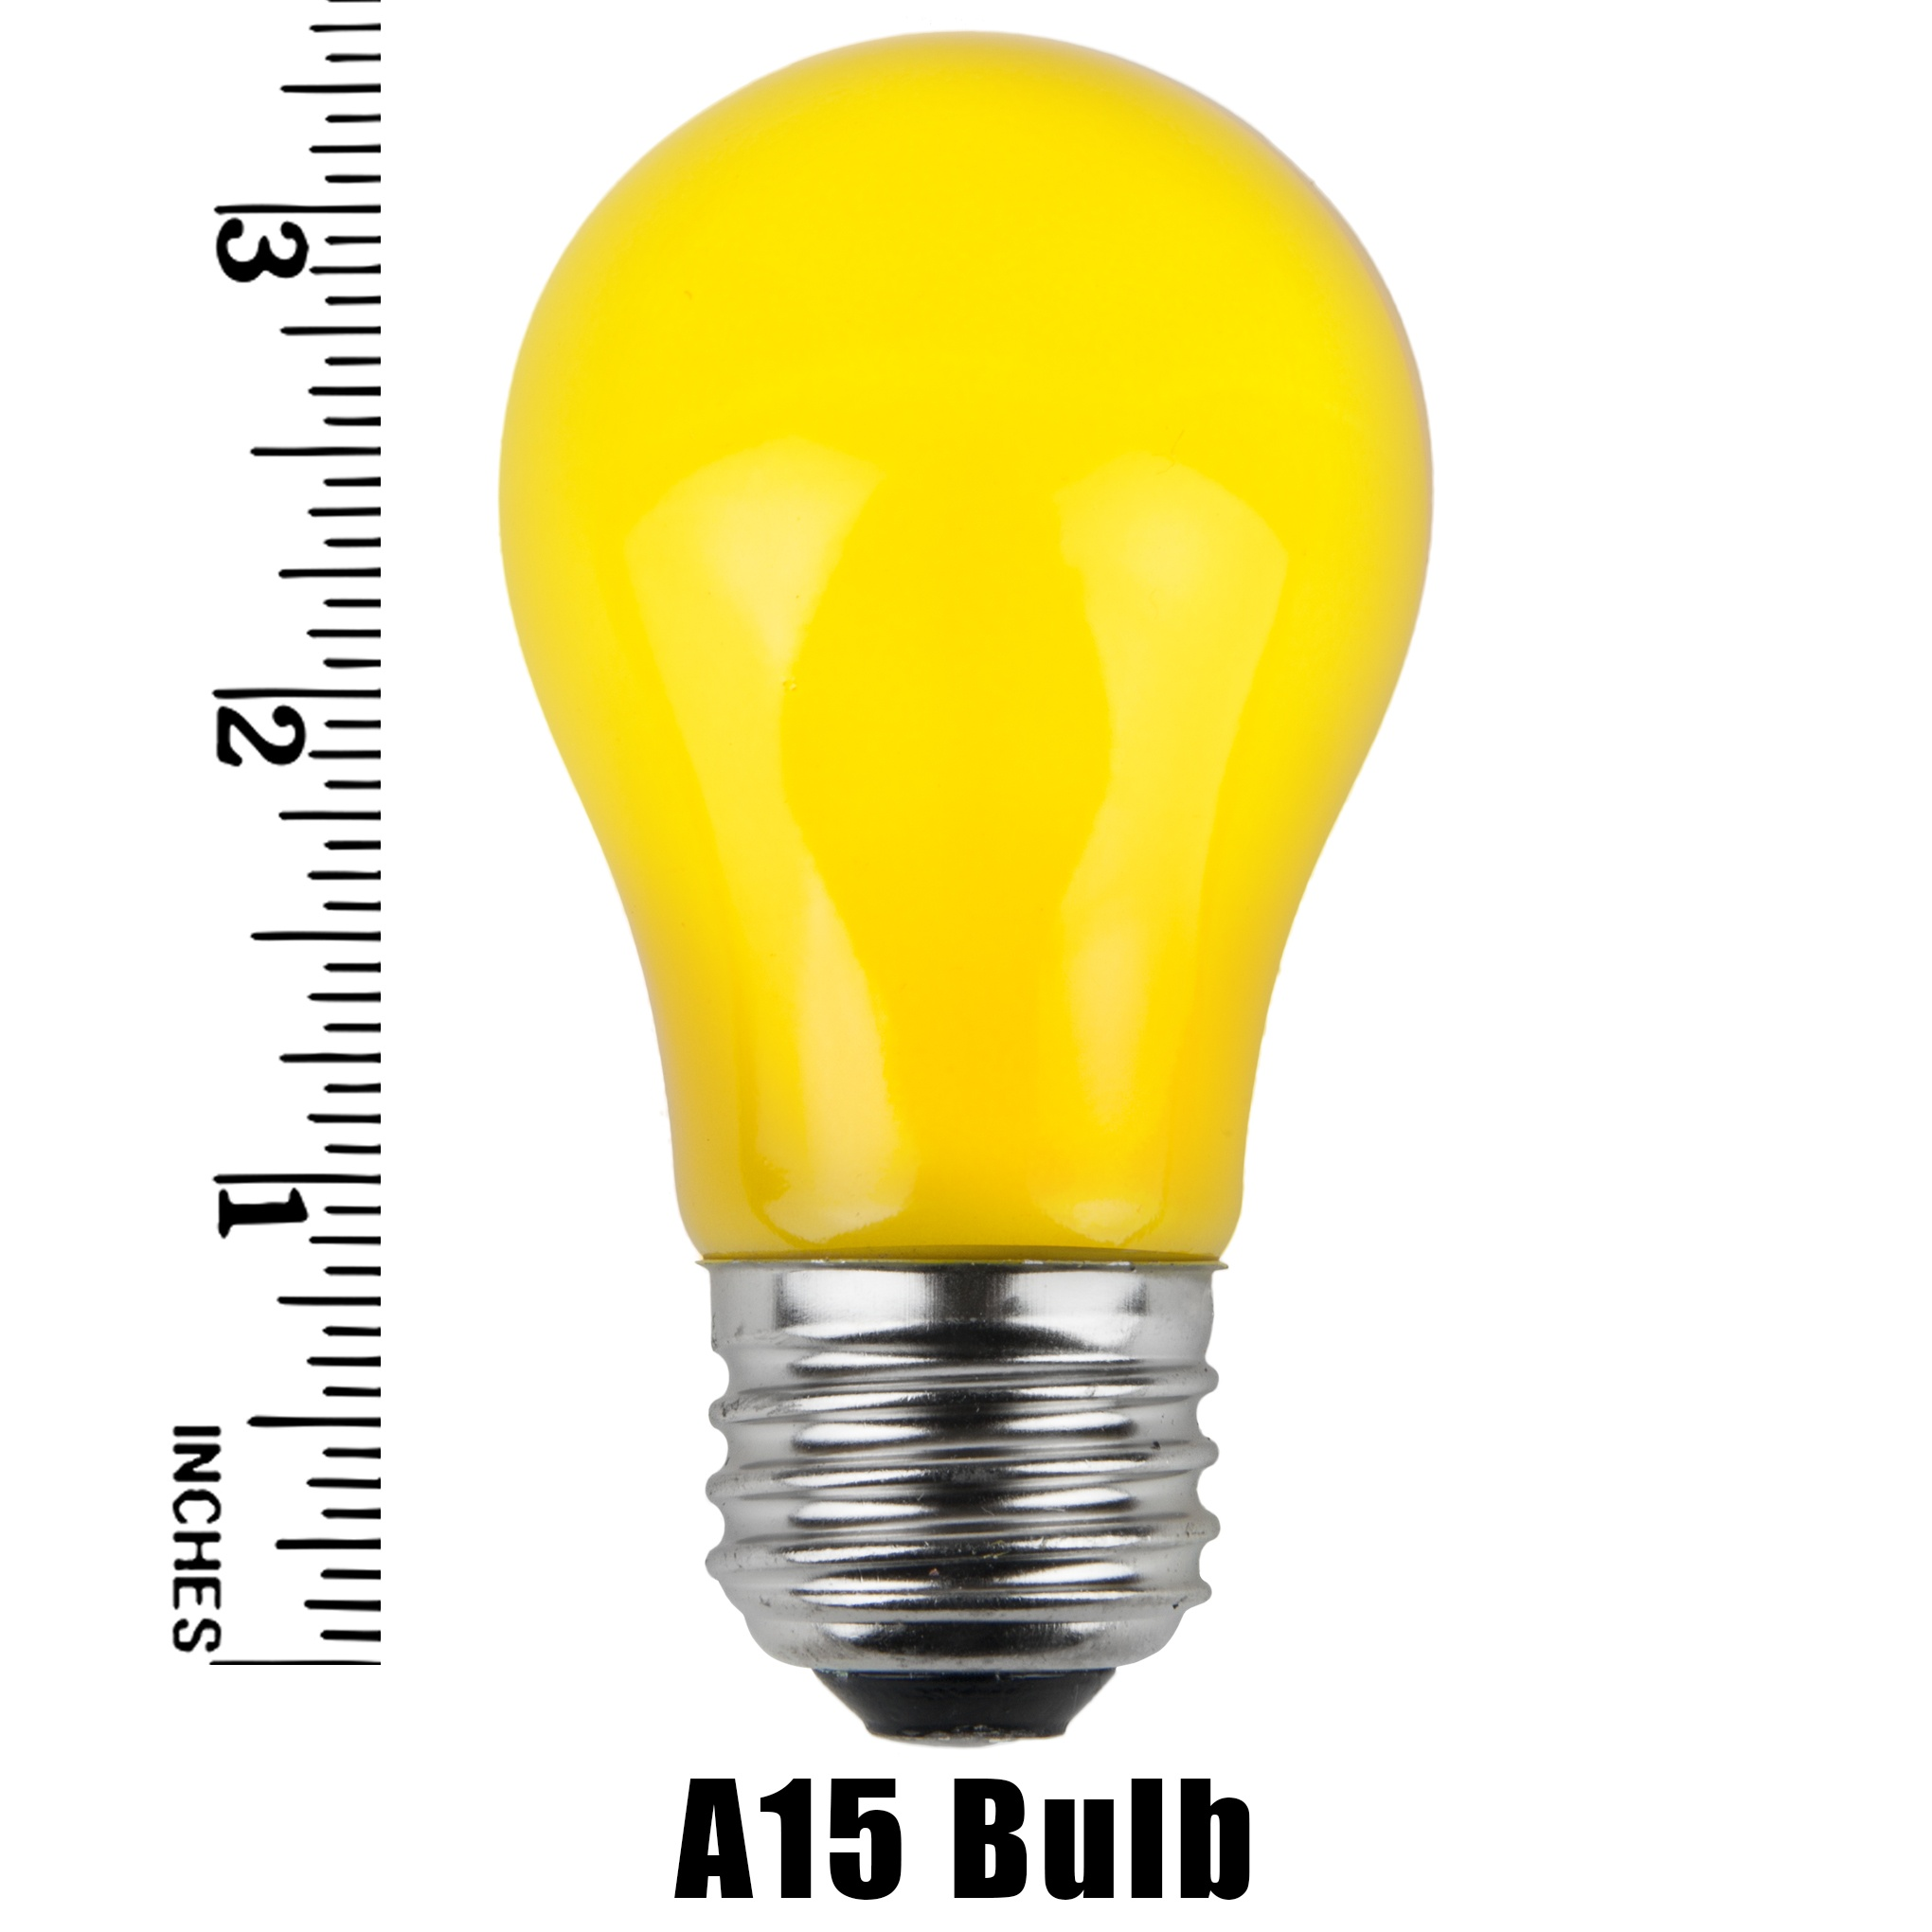 A15 Yellow Opaque Incandescent Bulb Measurement